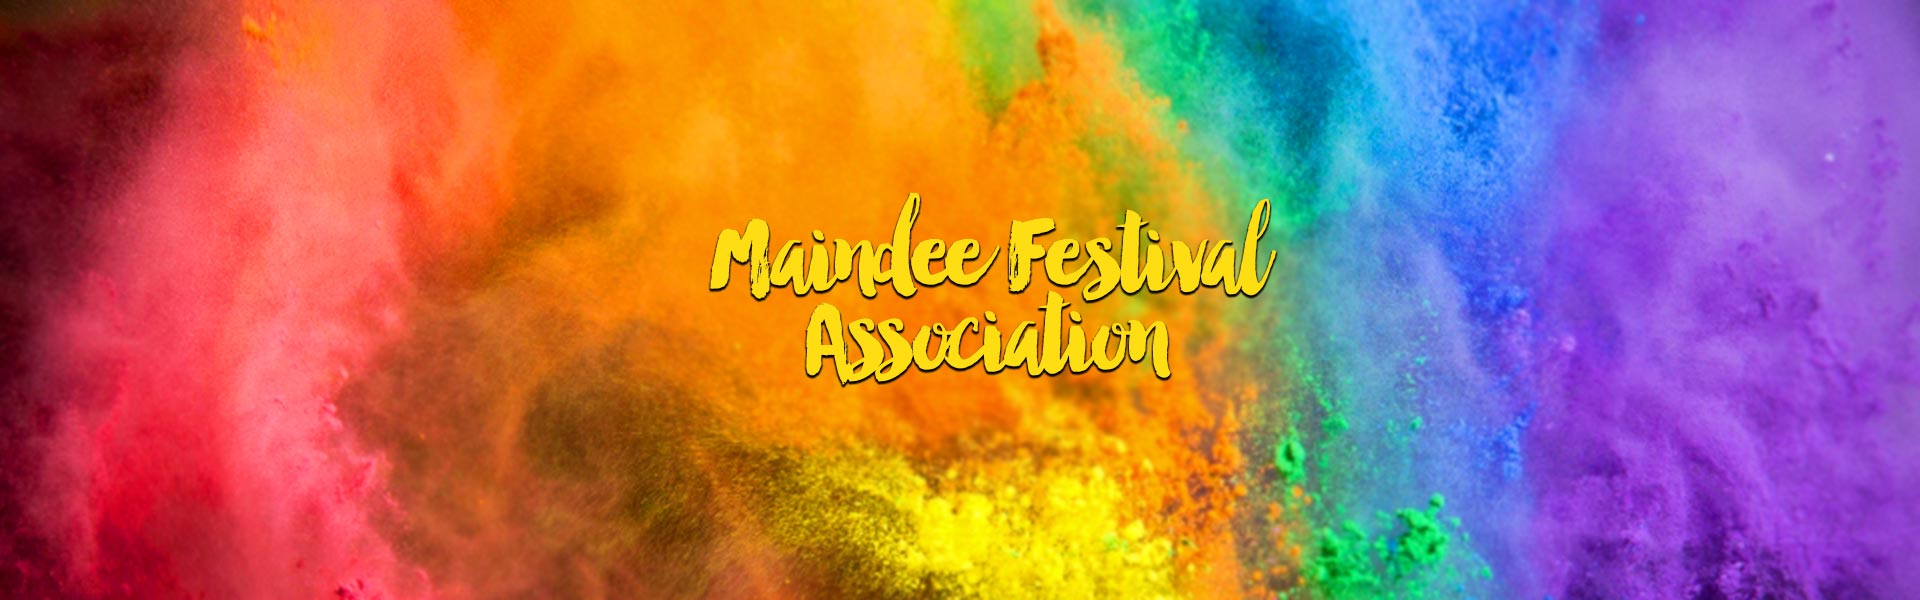 About Maindee Festival Association